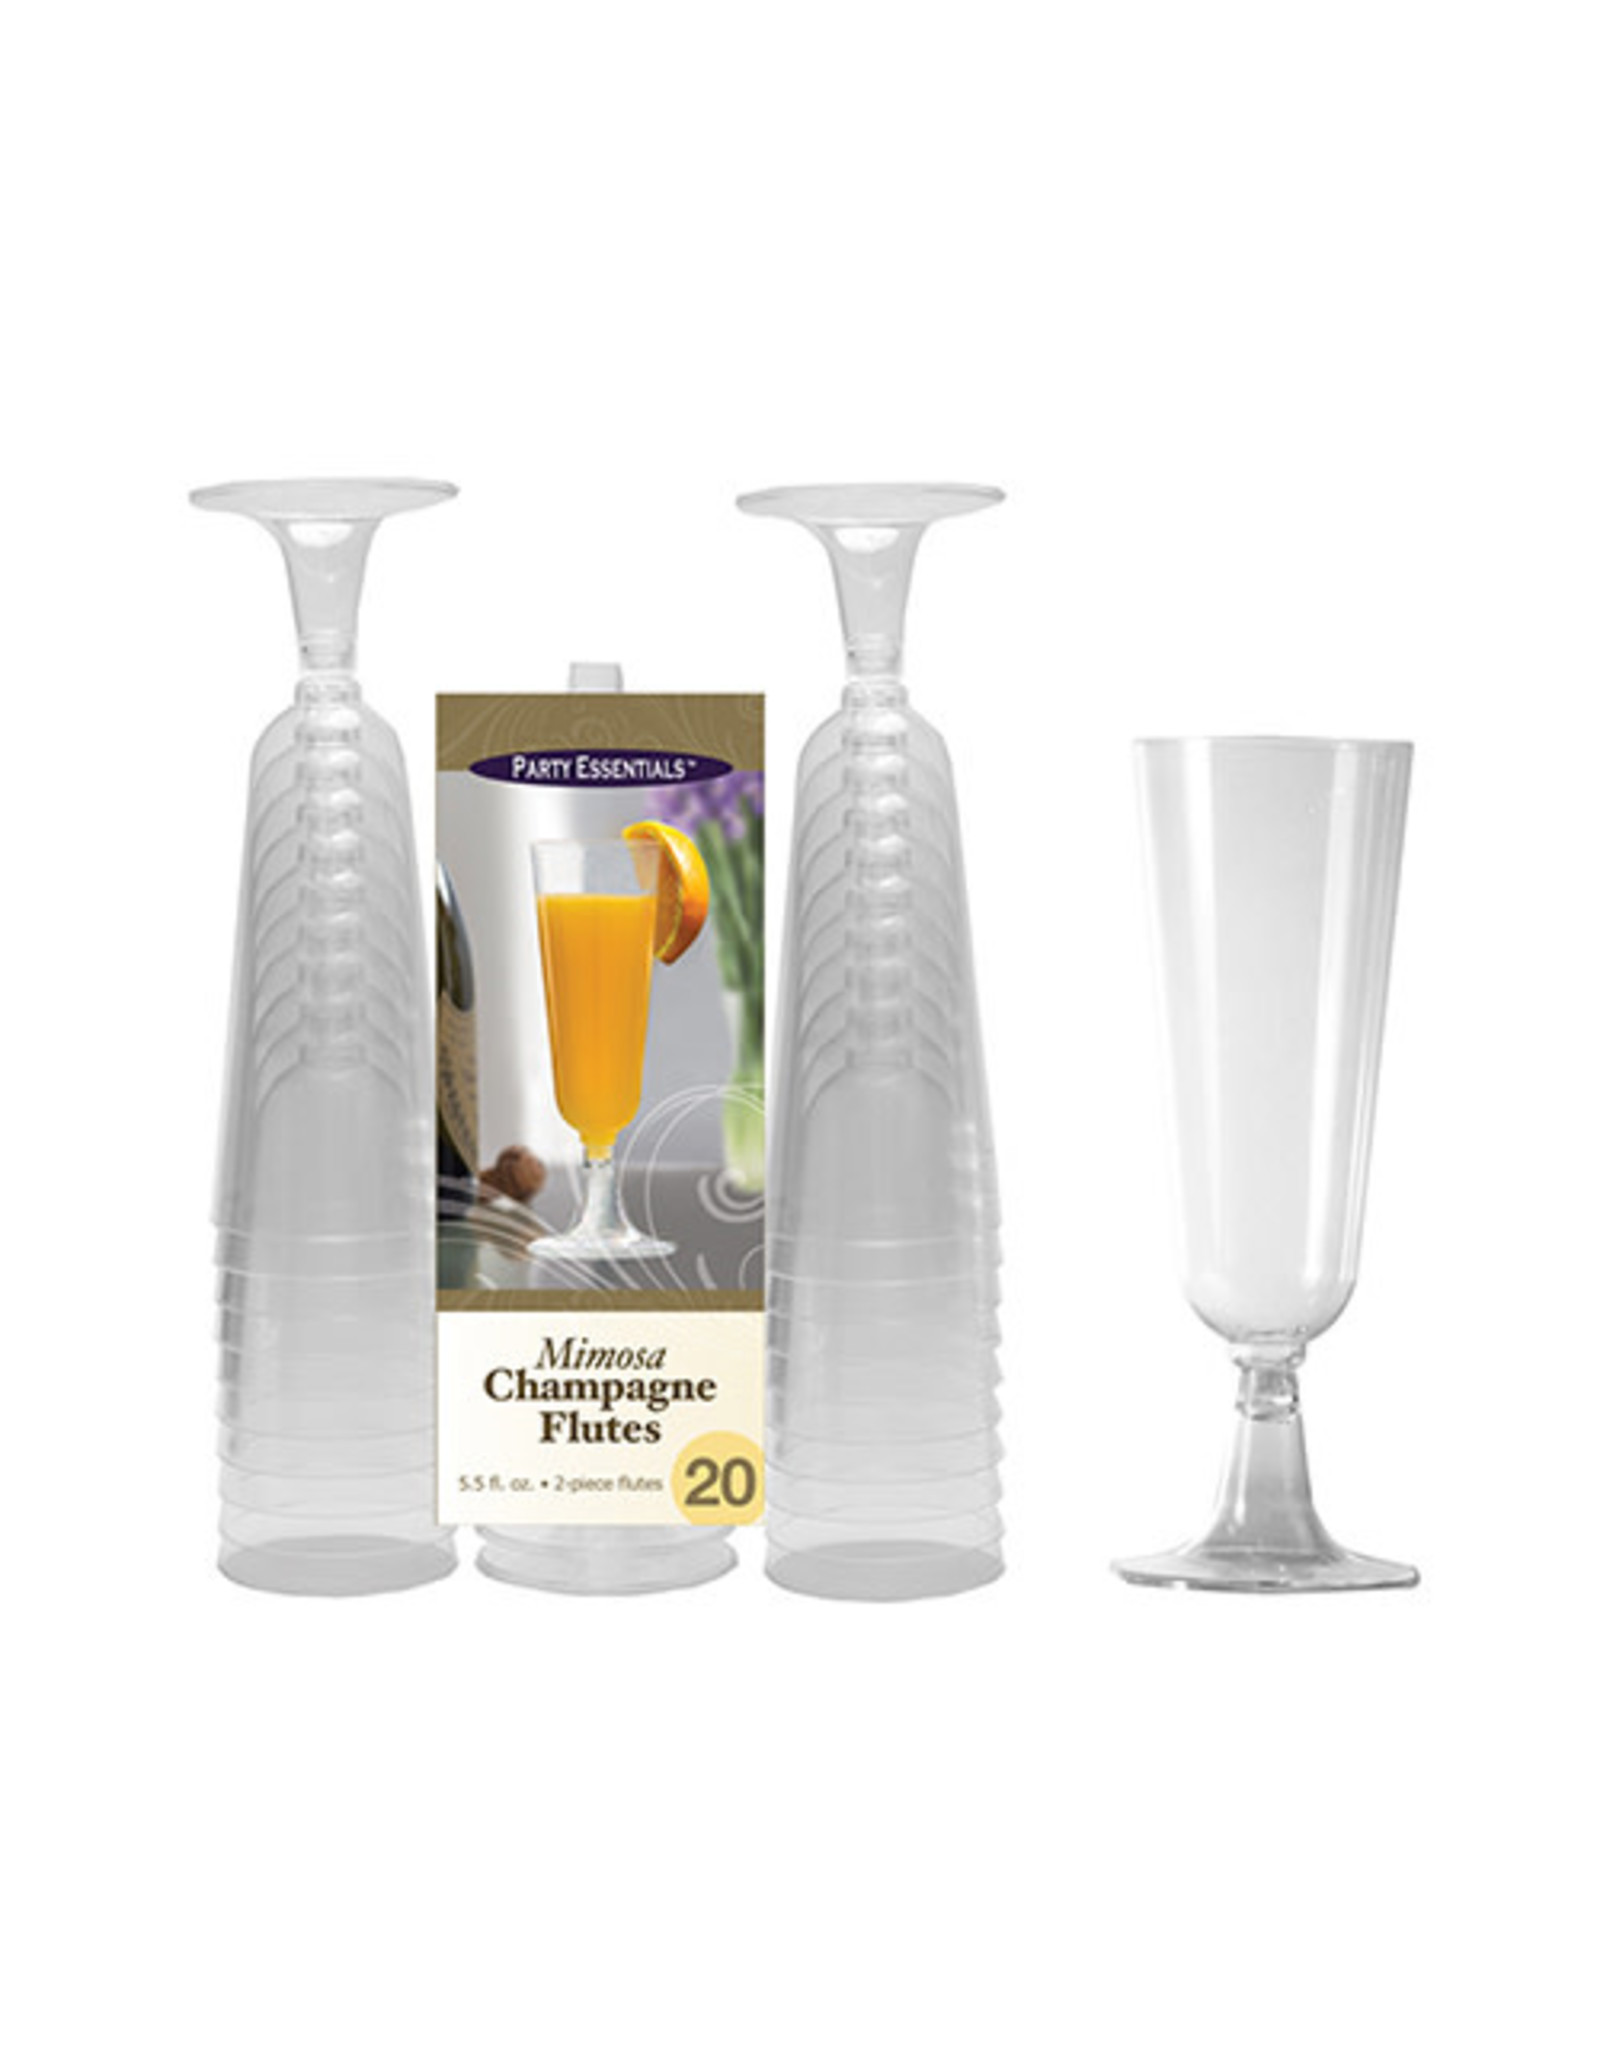 Party Essentials 5.5 oz. Clear 2 pc. Mimosa Flutes - 20 Ct.